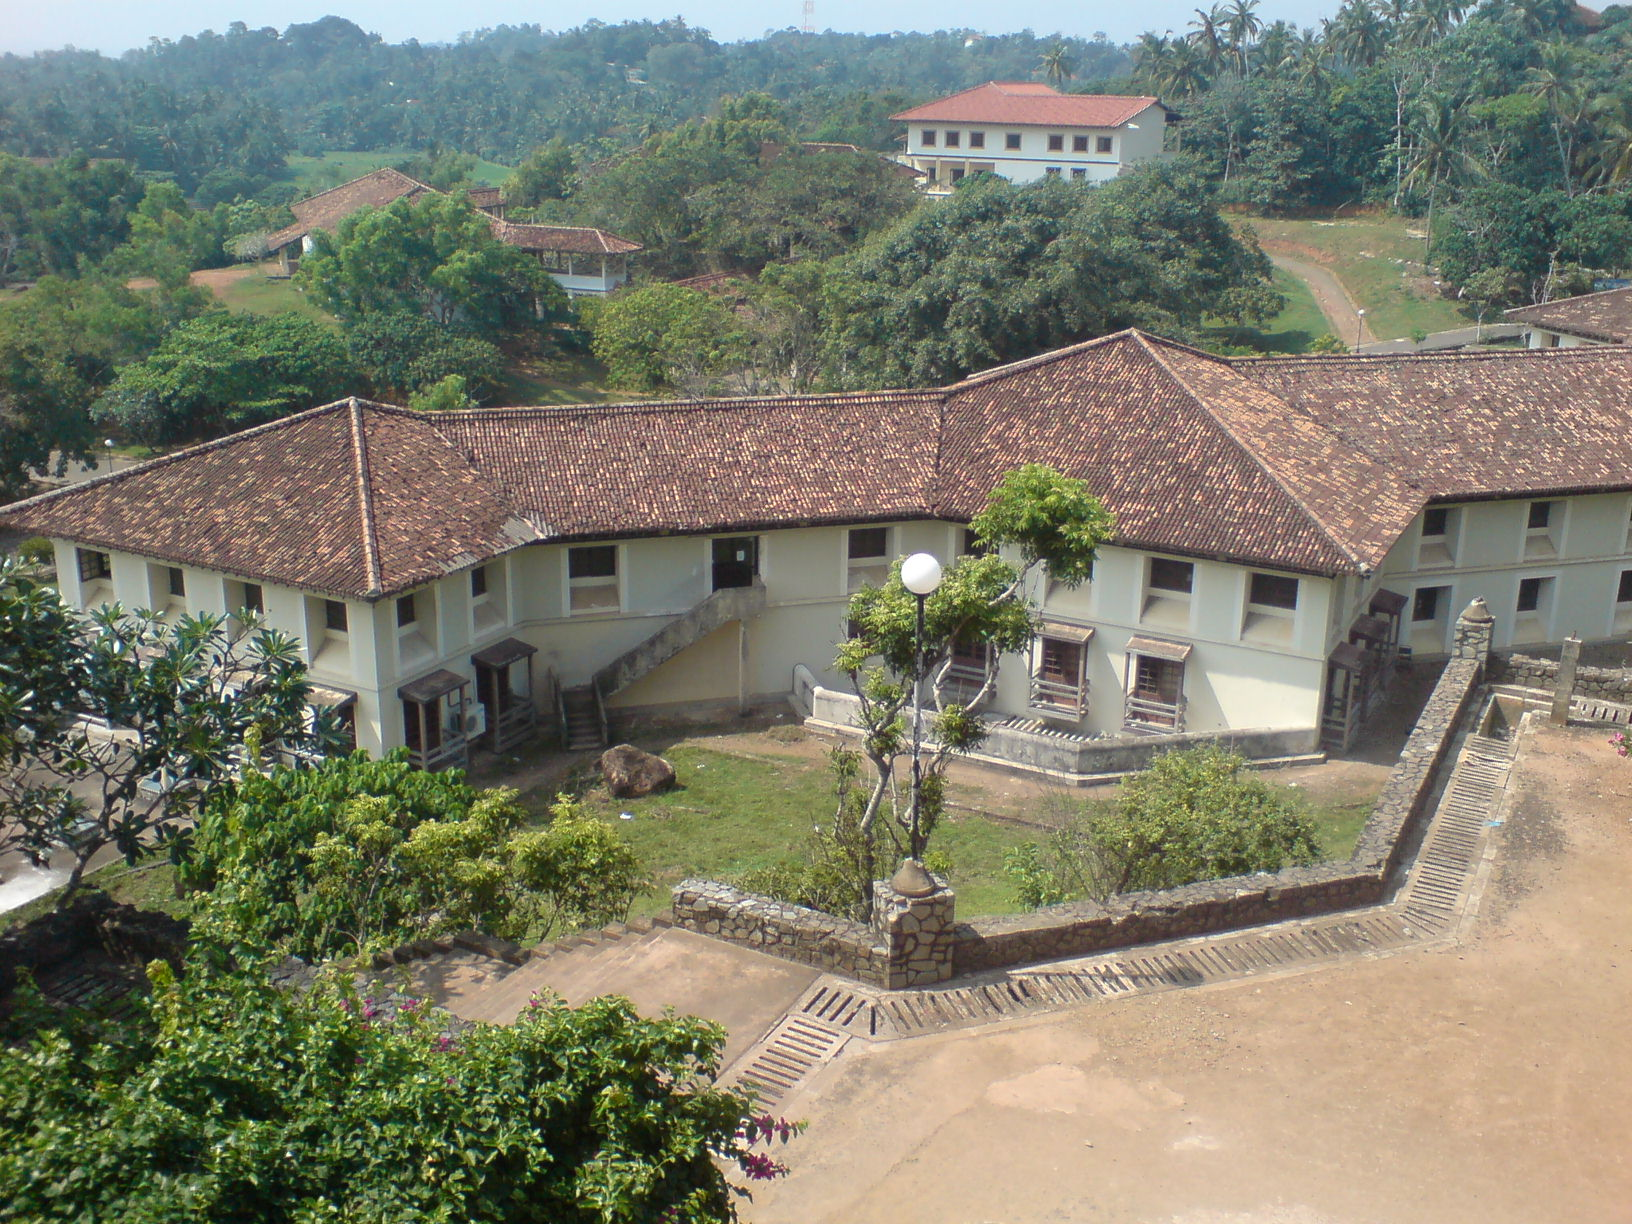 Faculties and institutions of University of Ruhuna - Wikipedia